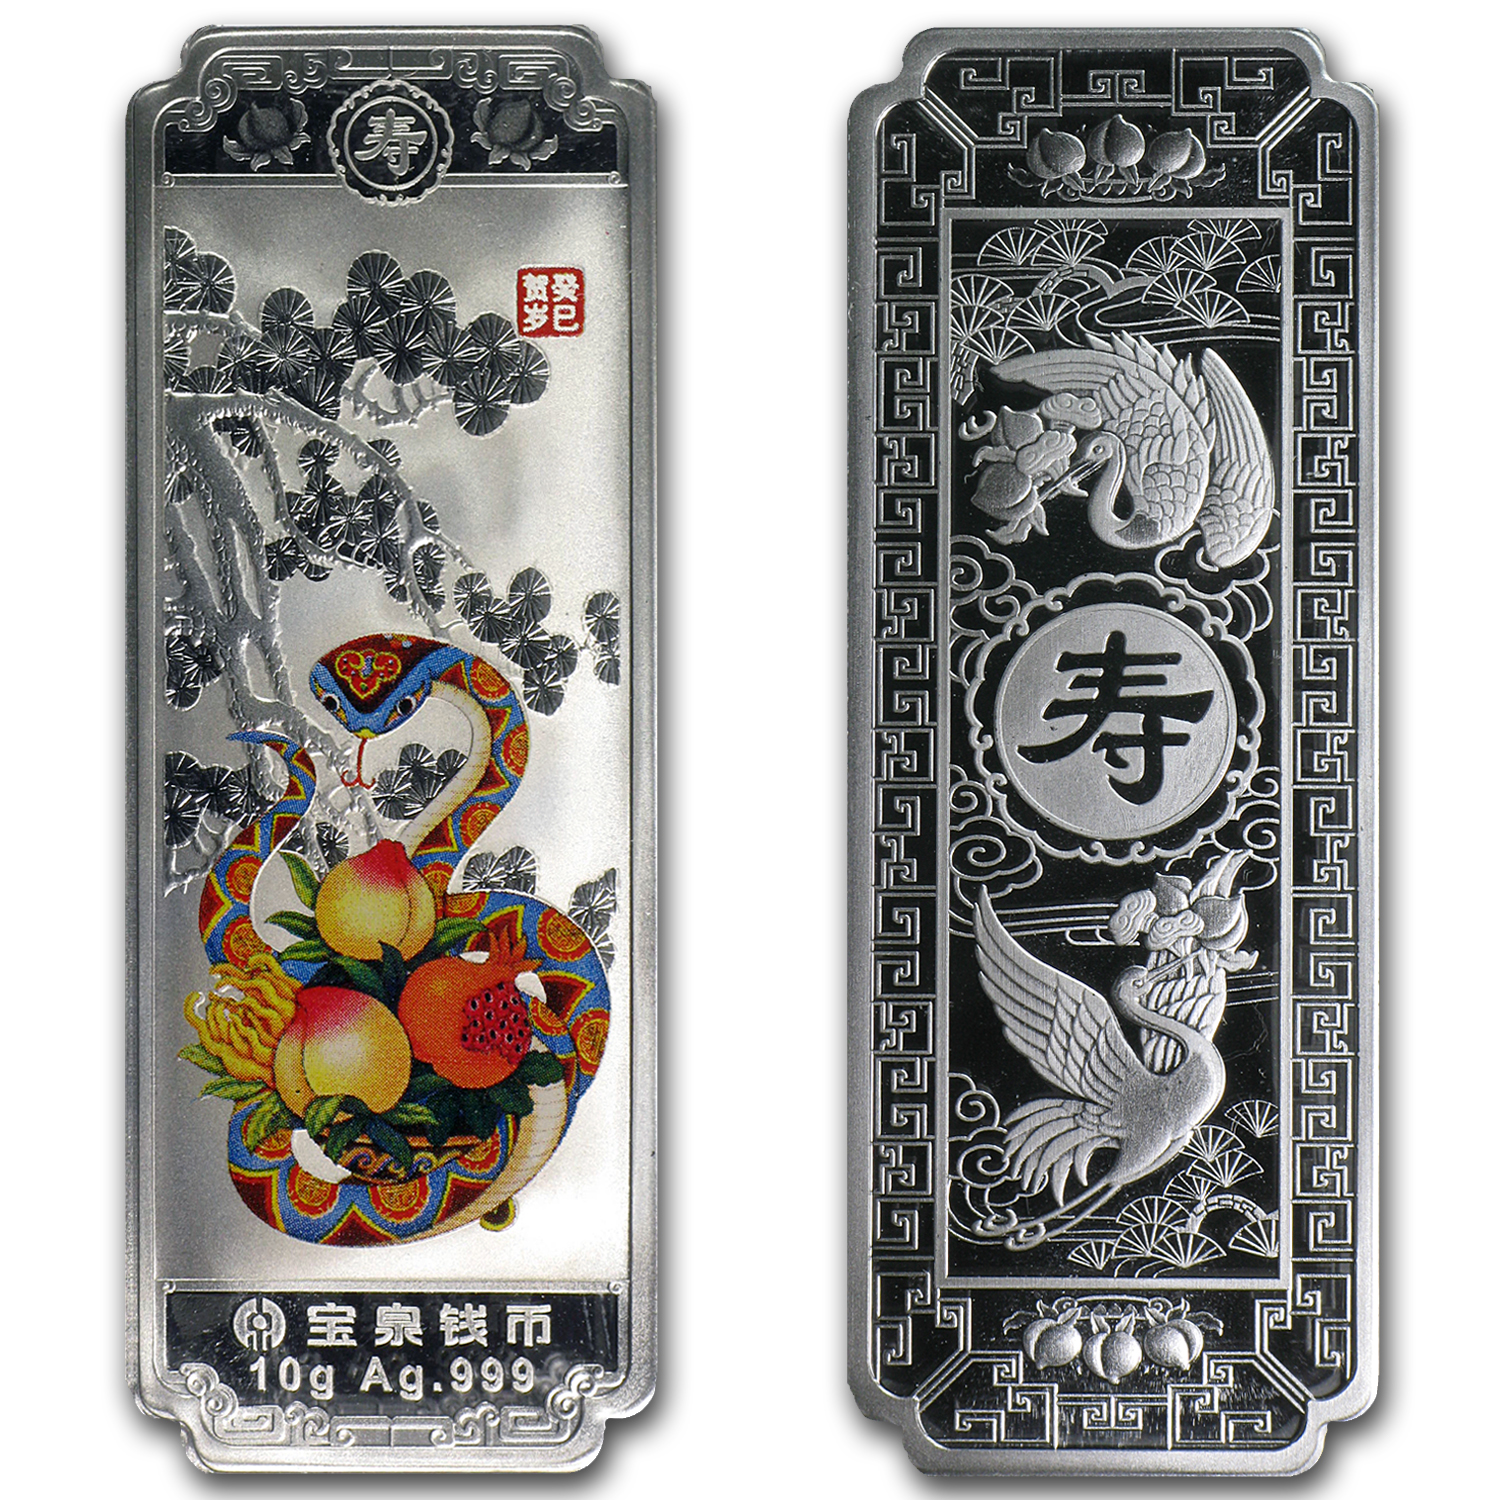 10 gram Silver Bars - Year of the Snake (2013/Colorized/5 Pc.)